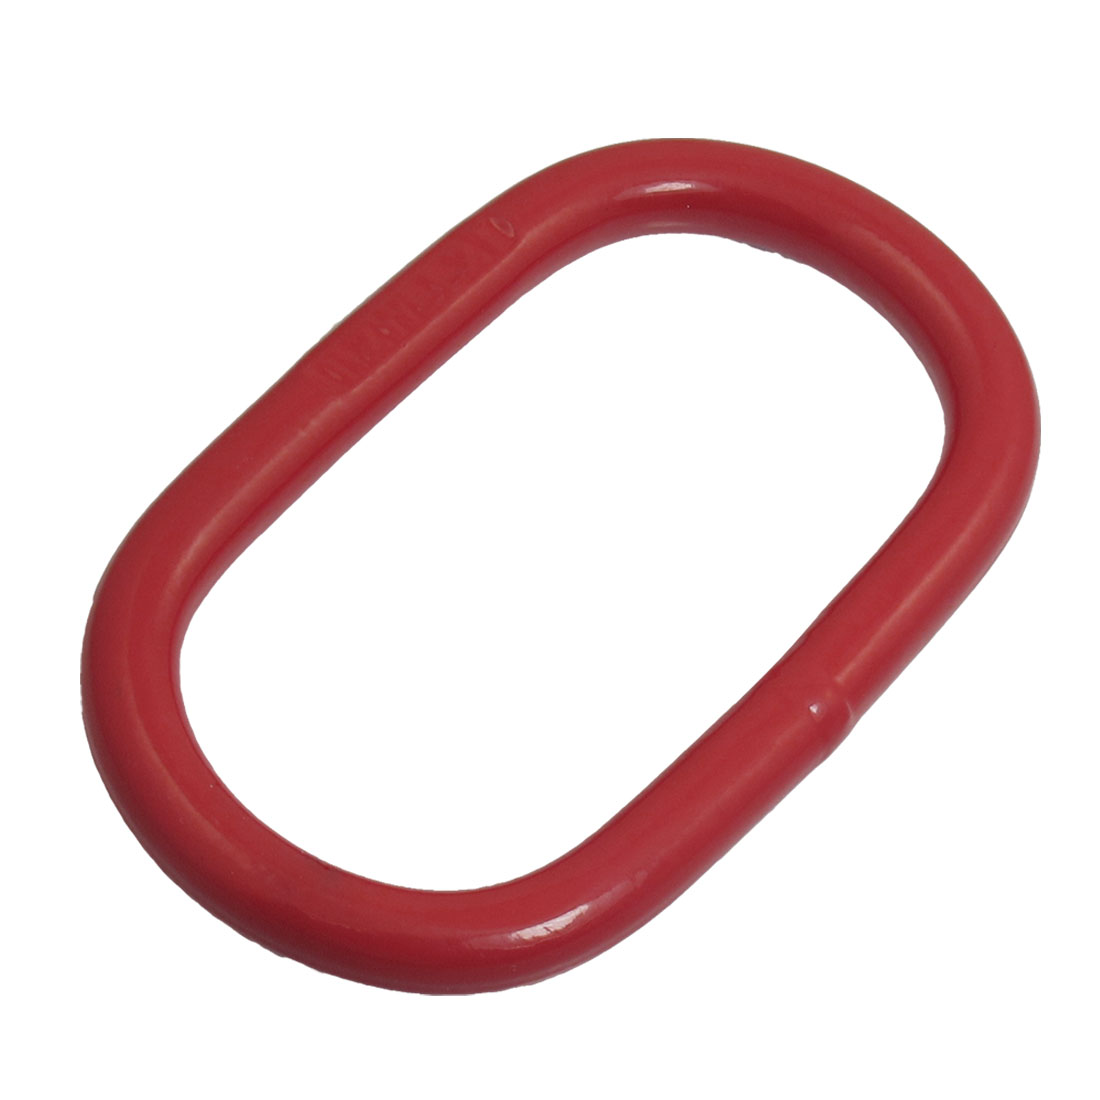 2T 4400Lbs High Strength Oval Lashing Lifting Ring Tool Red